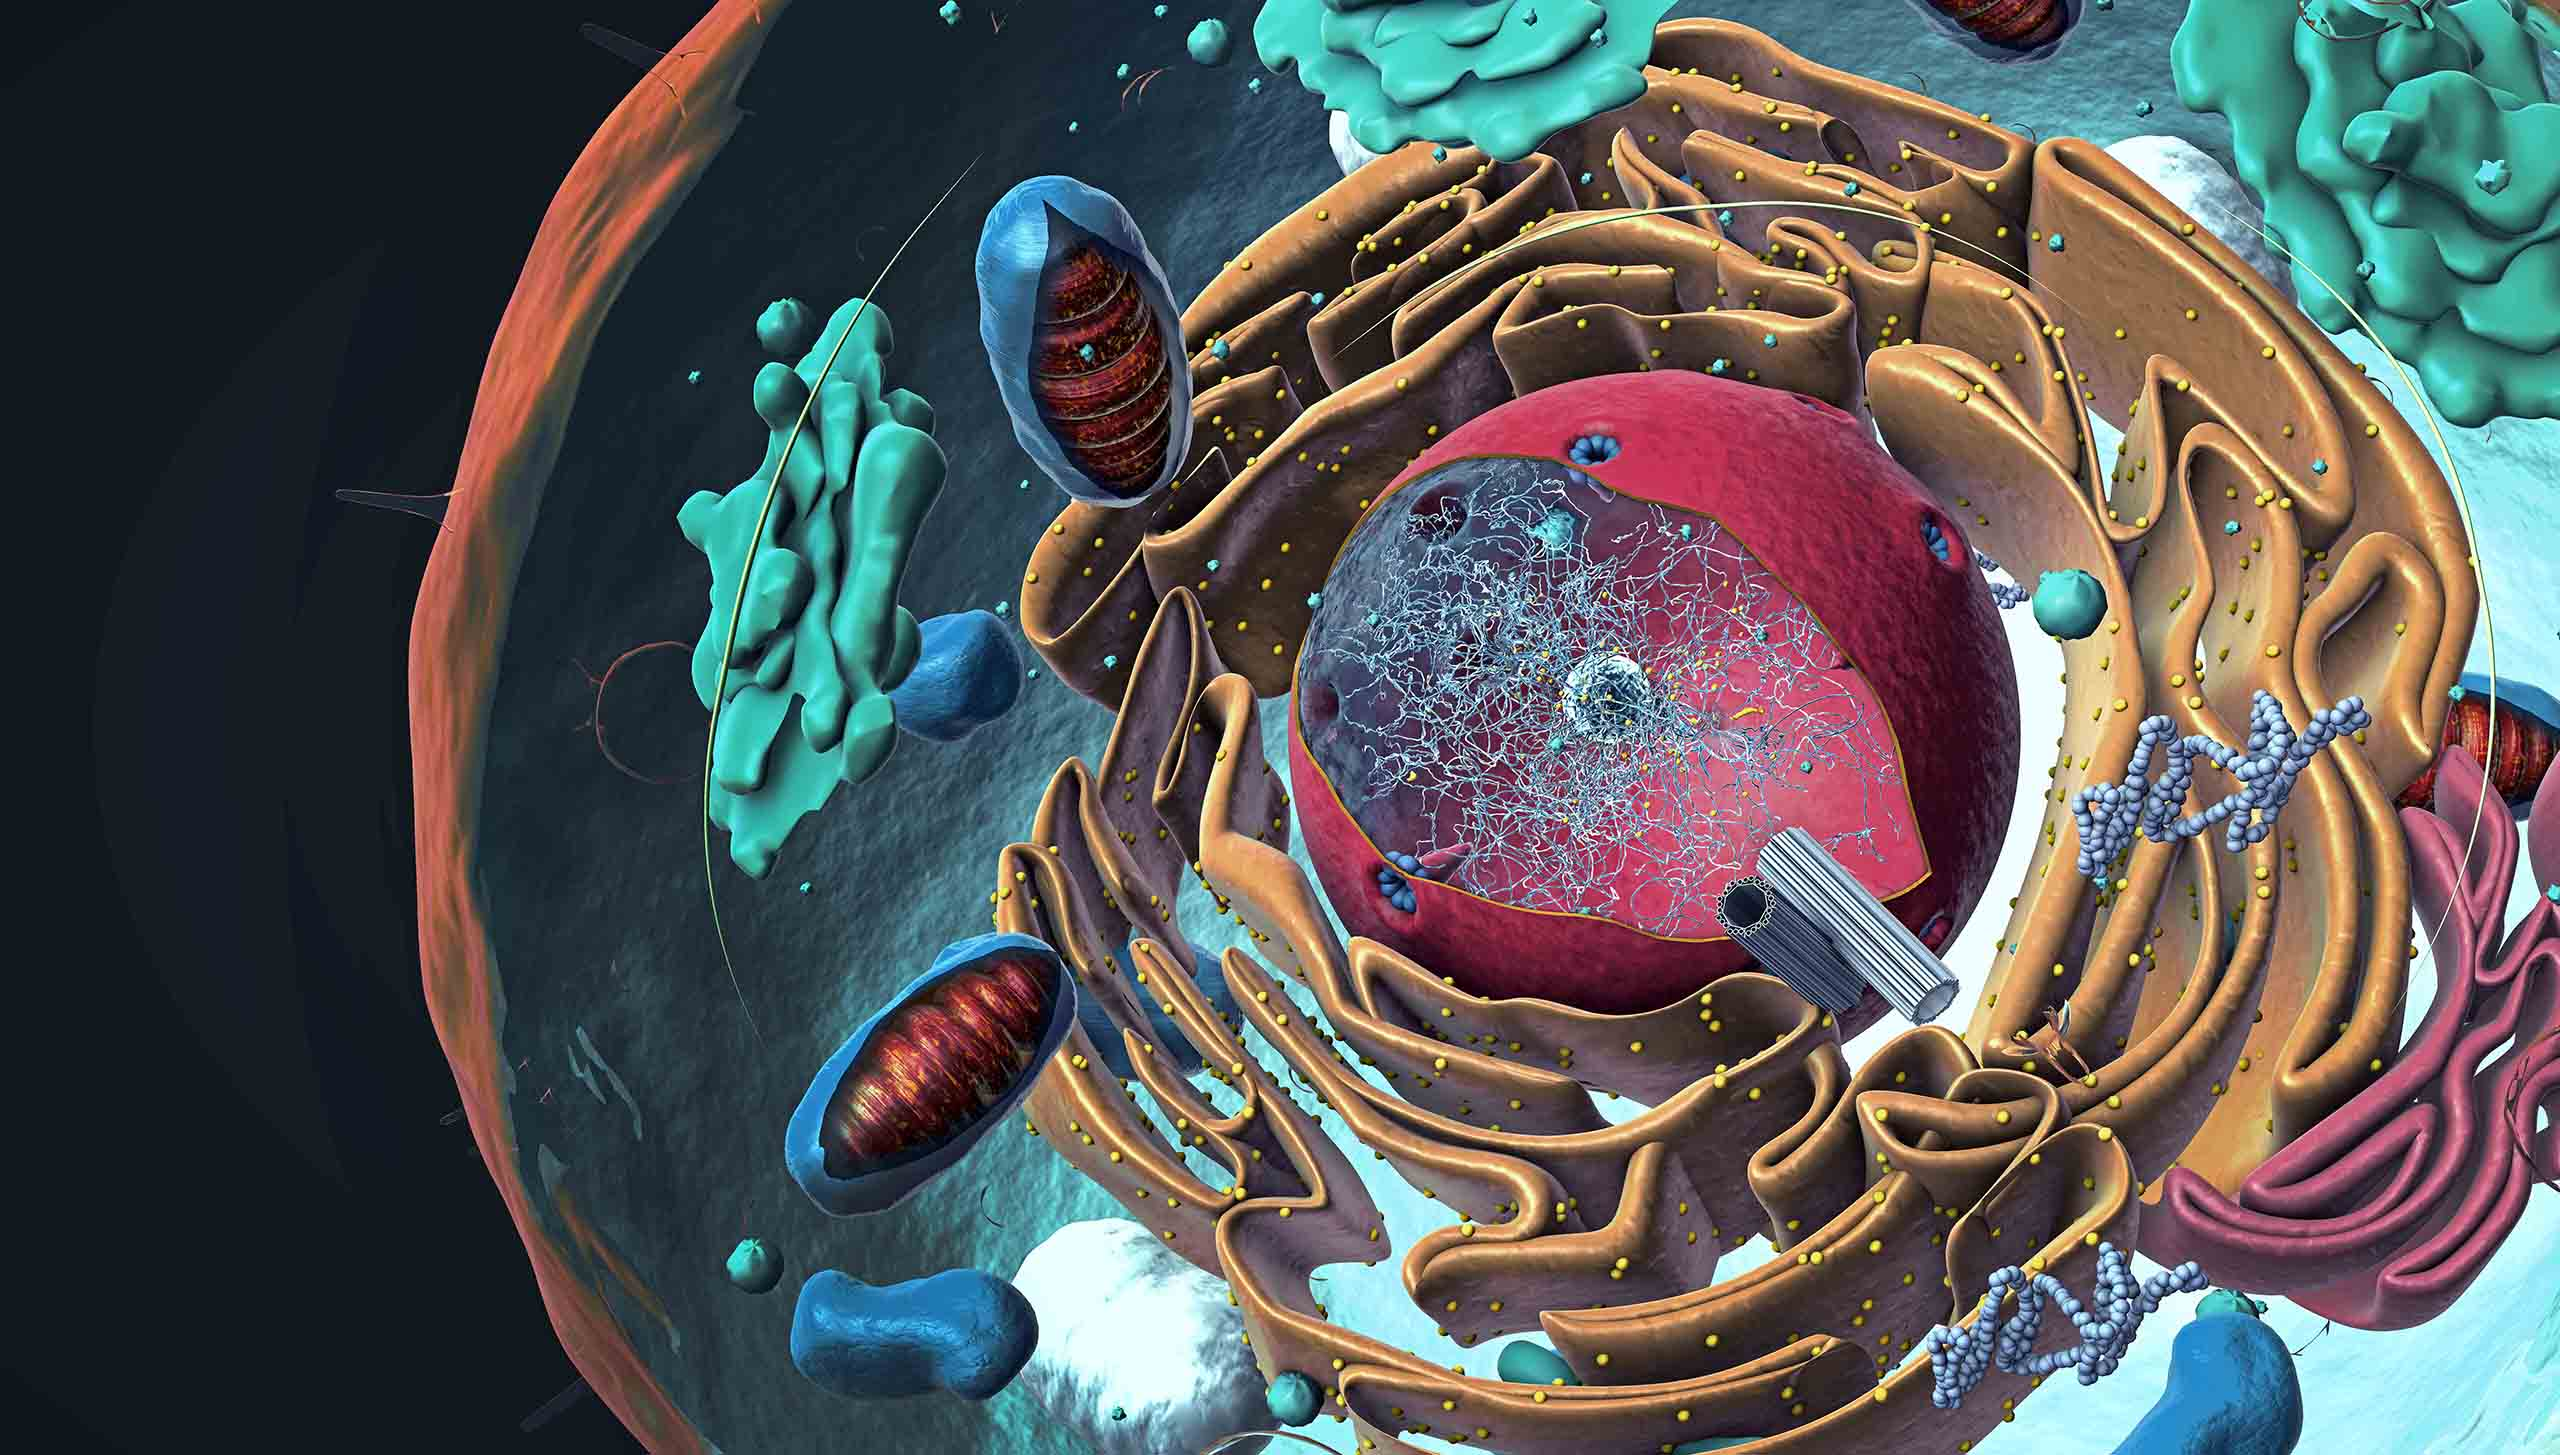 Components of Eukaryotic cell, nucleus and organelles and plasma membrane - 3d illustration